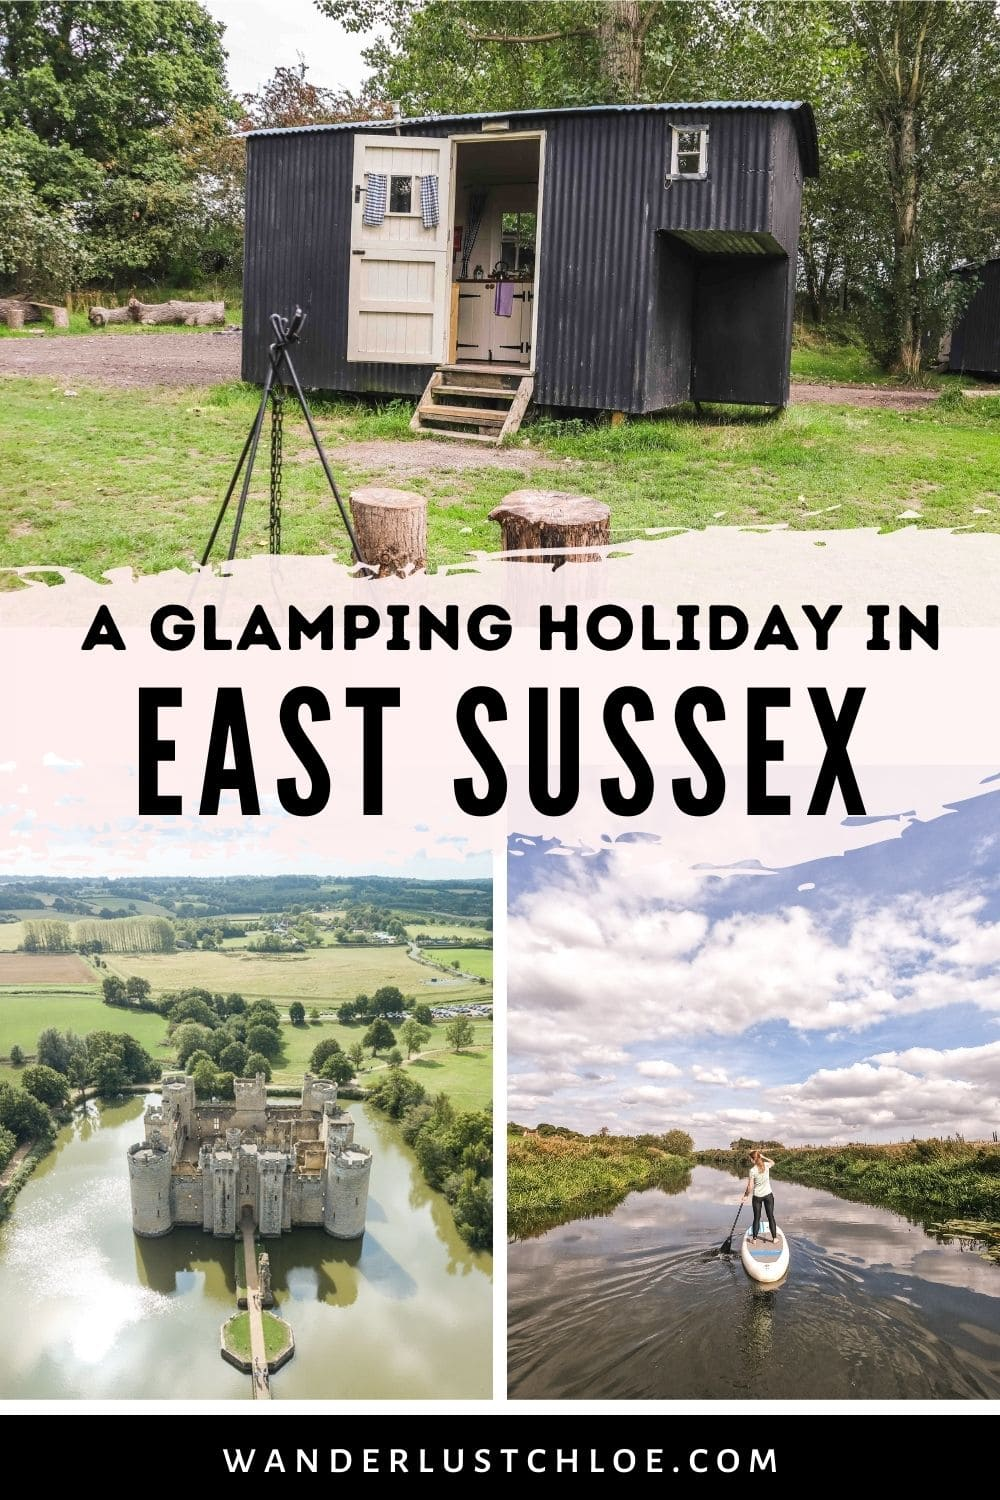 East Sussex glamping holiday